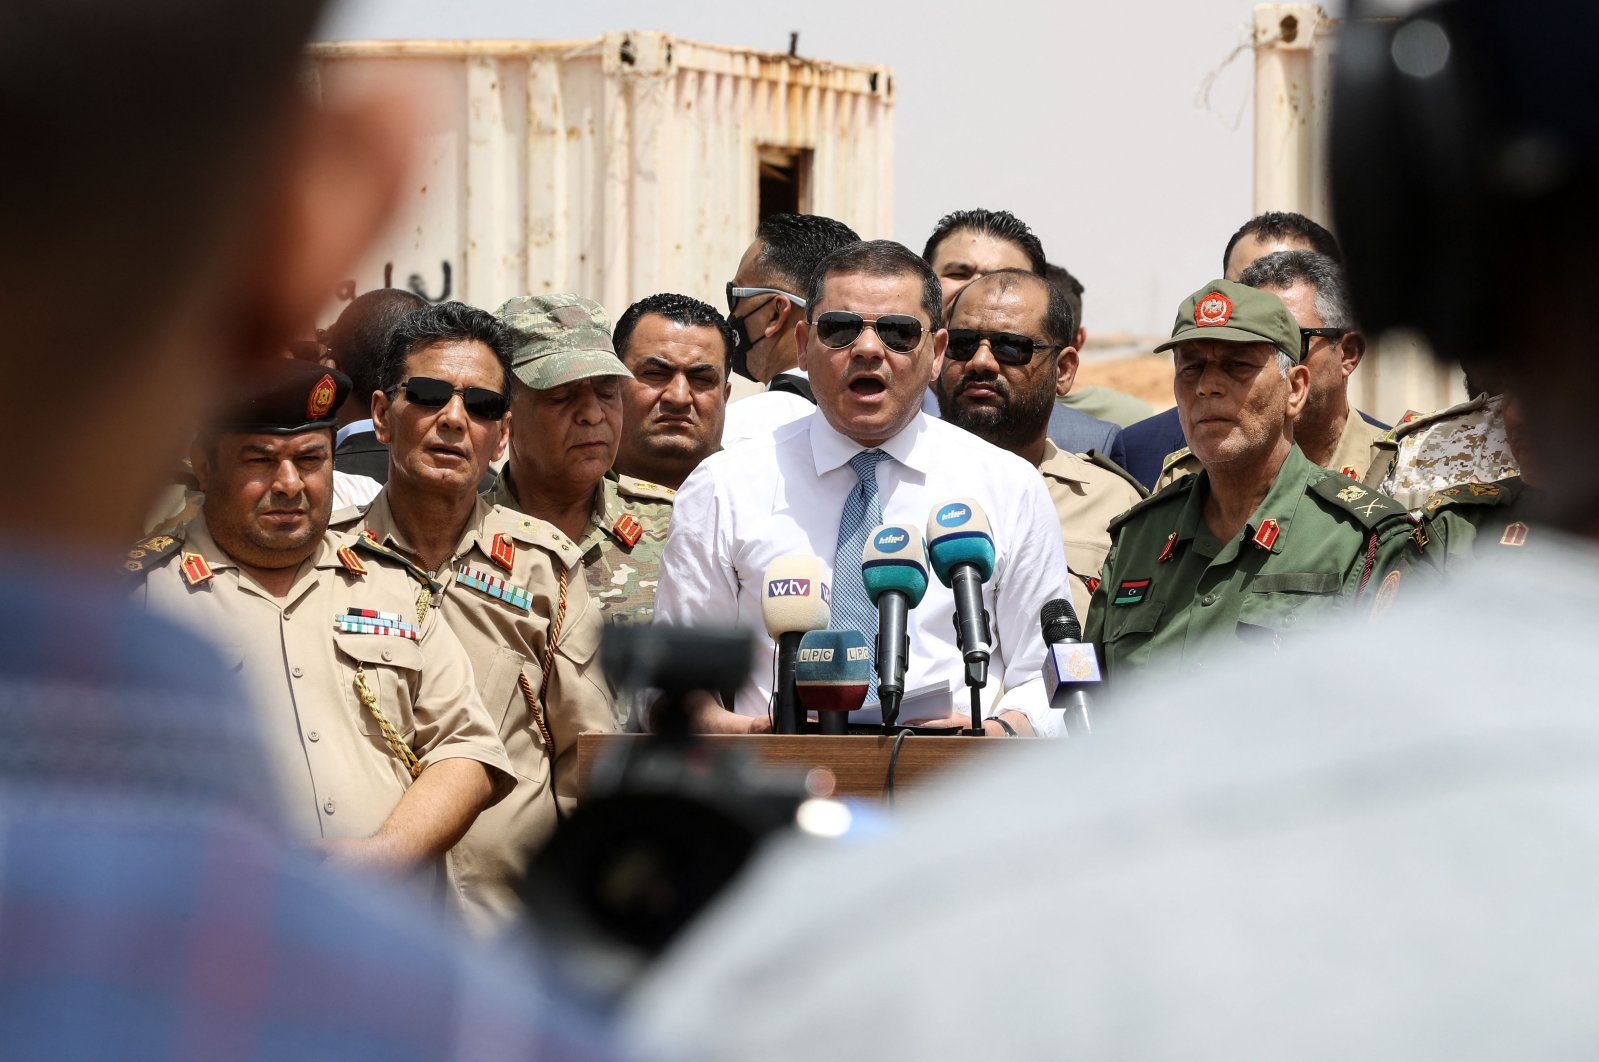 Libyan Interim Prime Minister Abdulhamid Dbeibah, delivers a speech in the town of Buwairat al-Hassoun, during a ceremony to mark the reopening of a 300-kilometer road between the cities of Misrata and Sirte, Libya, June 20, 2021. (AFP Photo)